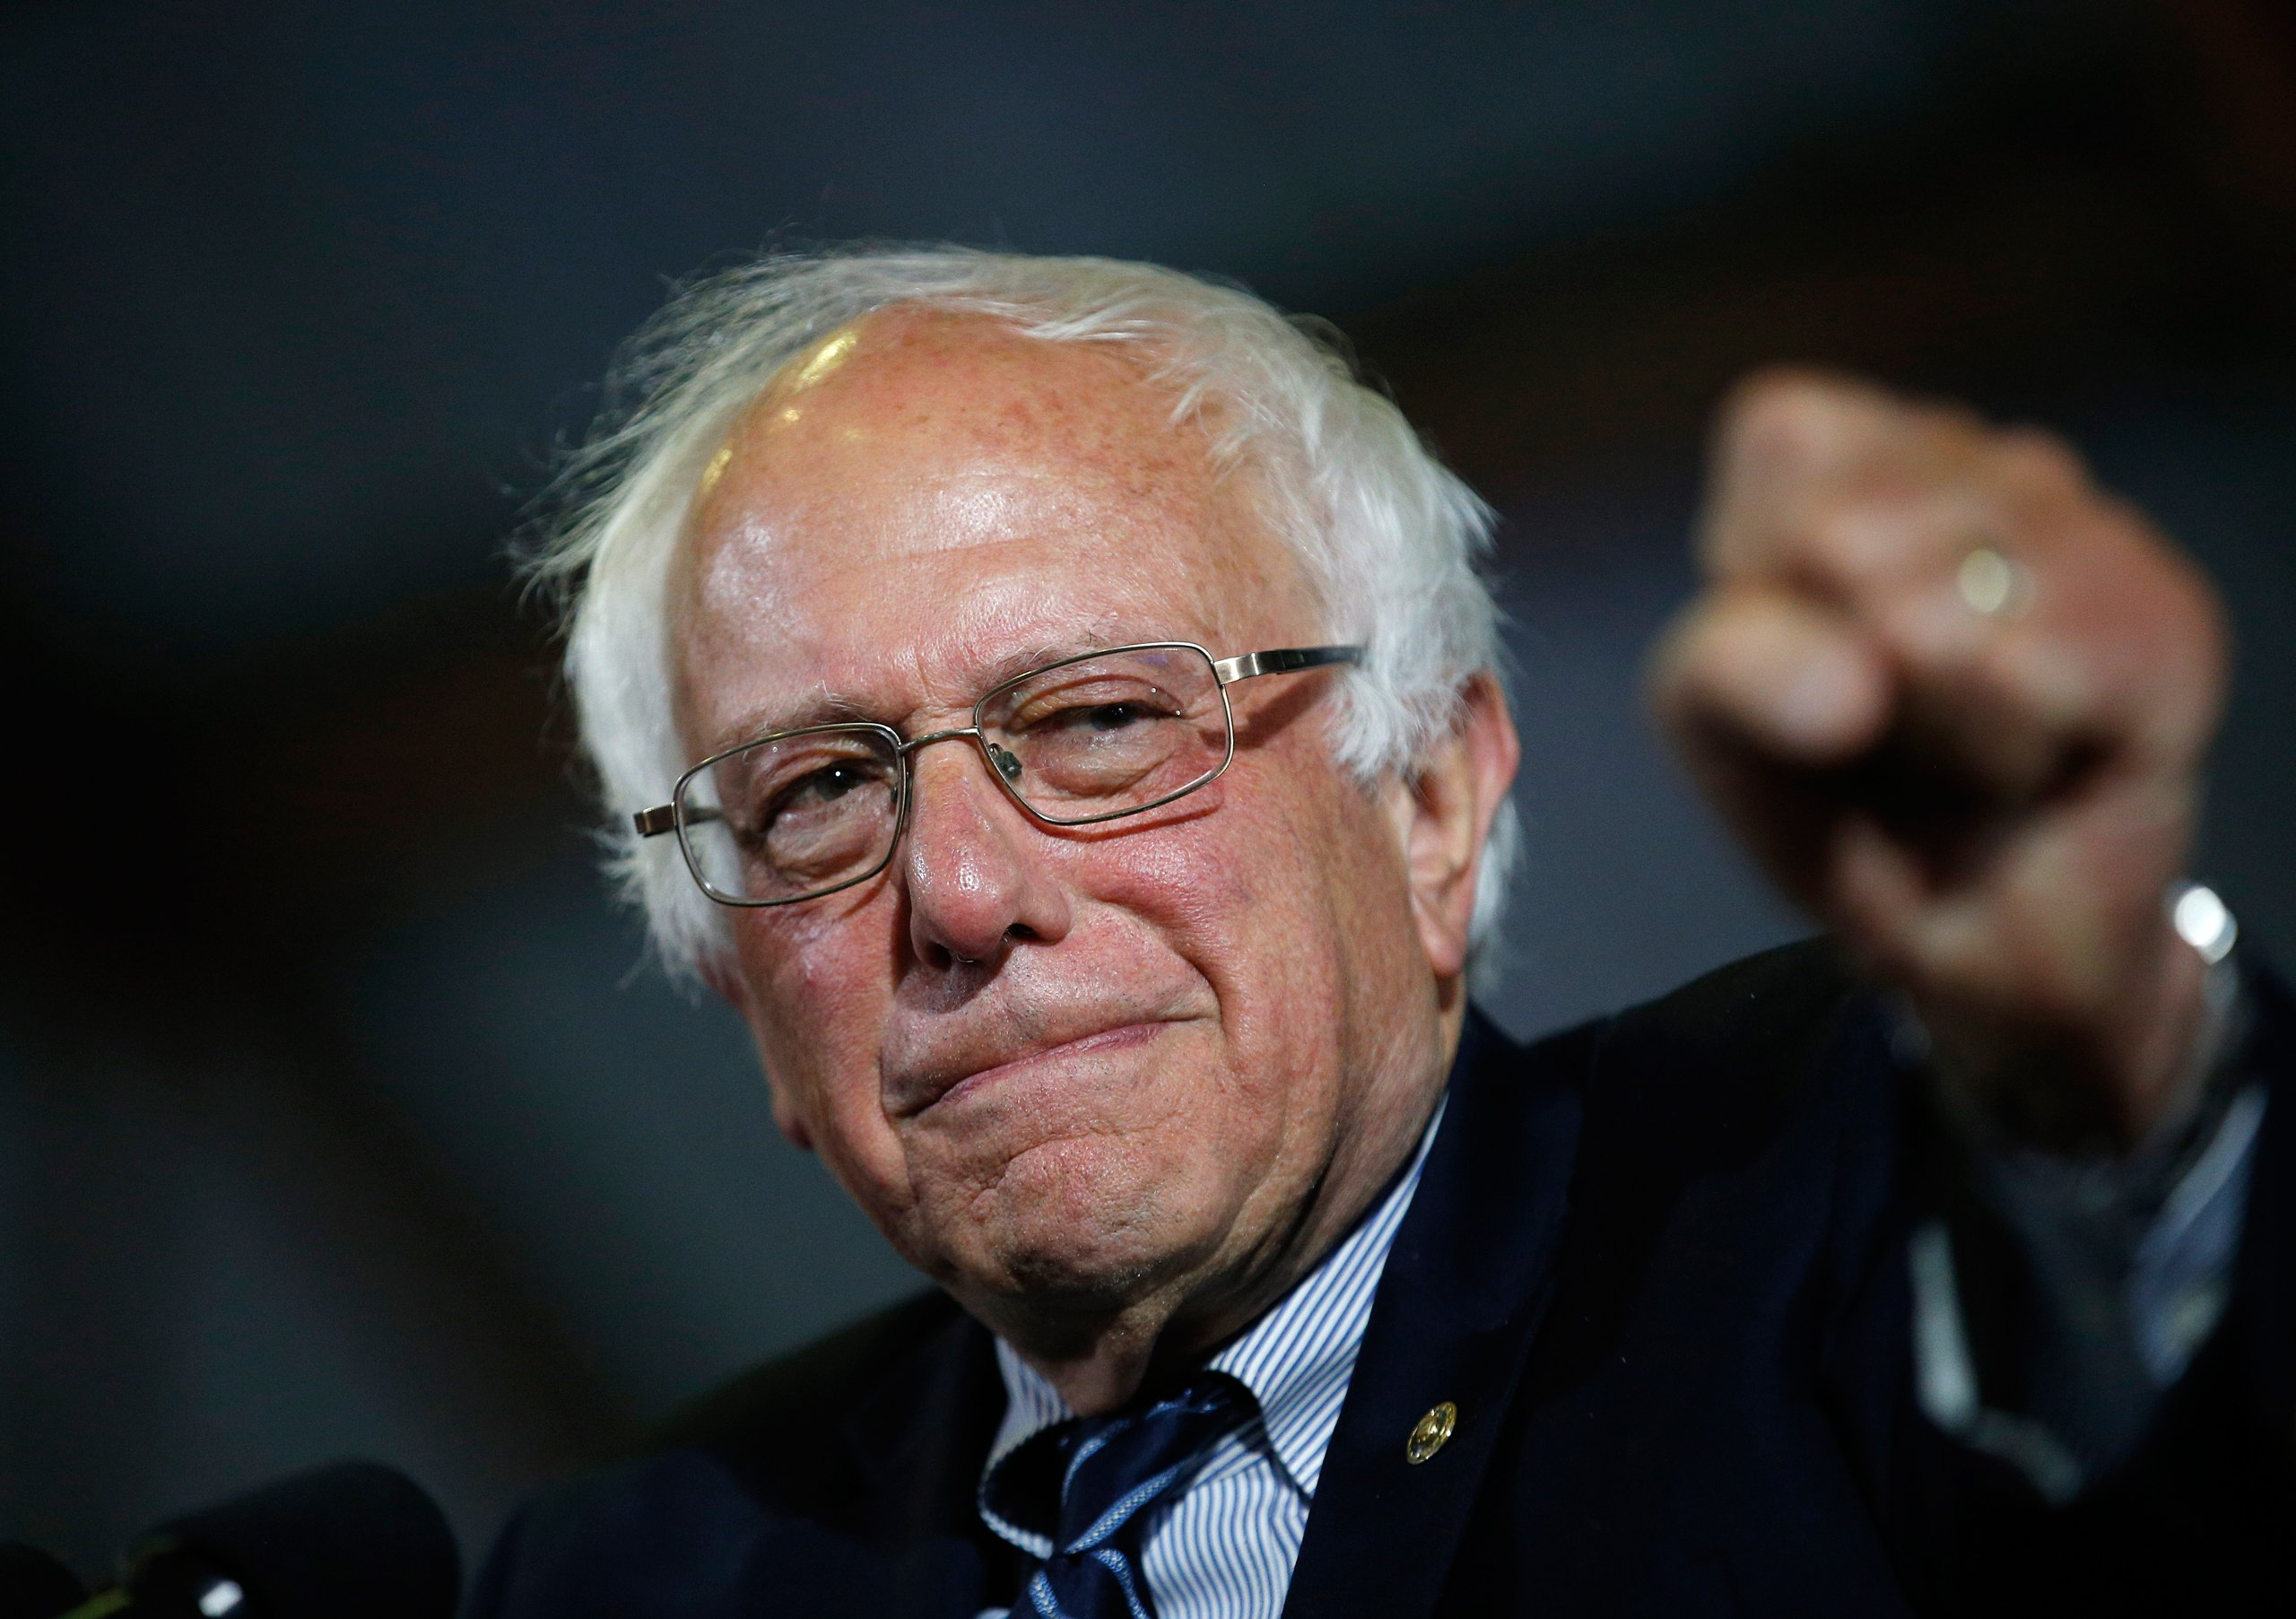 the-vision-partito-democratico-sanders